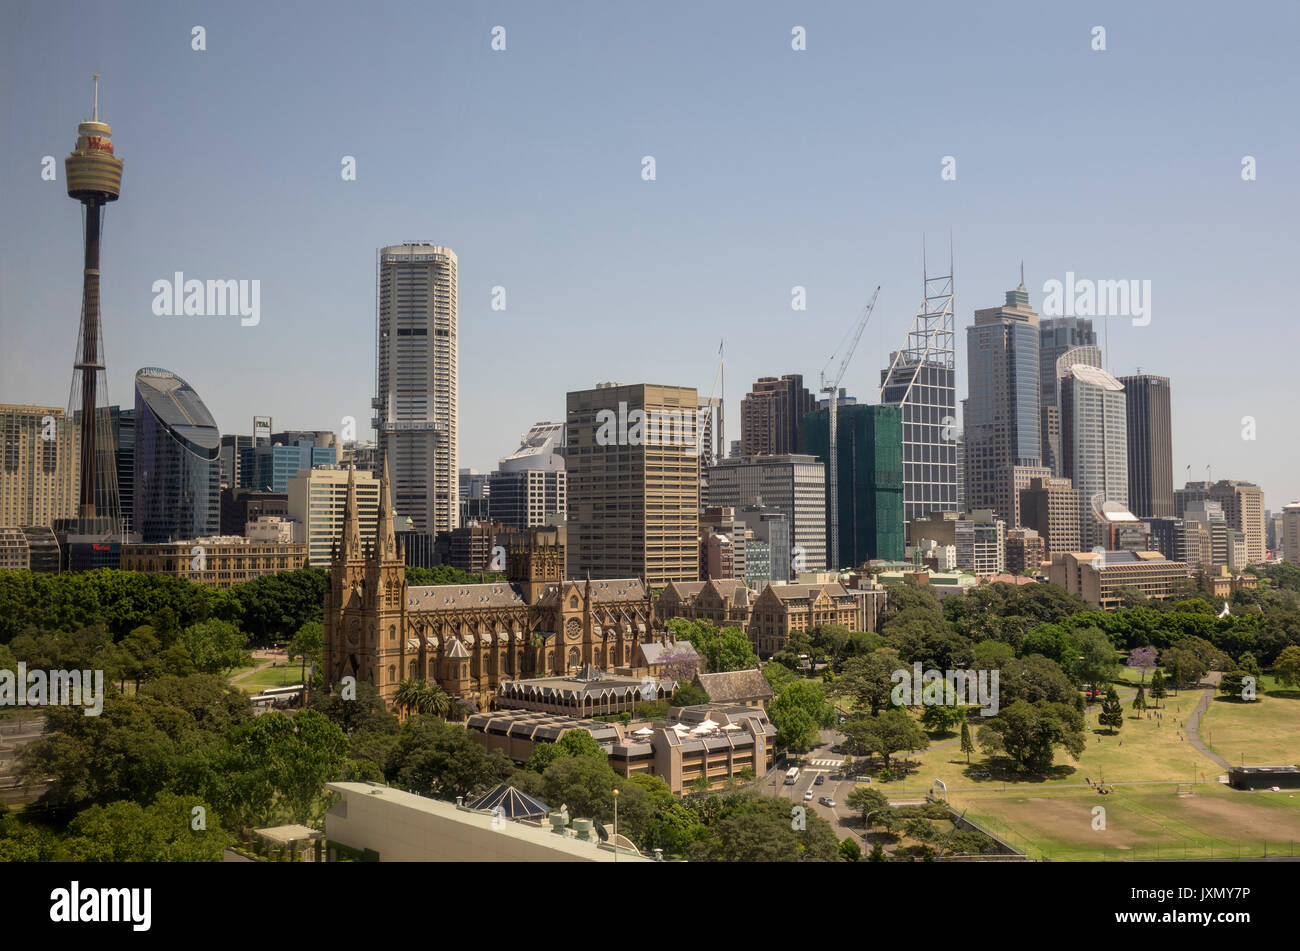 Downtown Central Business District Skyline Of Sydney New South Wales Australia, Includes The Domain, St Mary's Cathedral And The Sydney Tower Eye - Stock Image